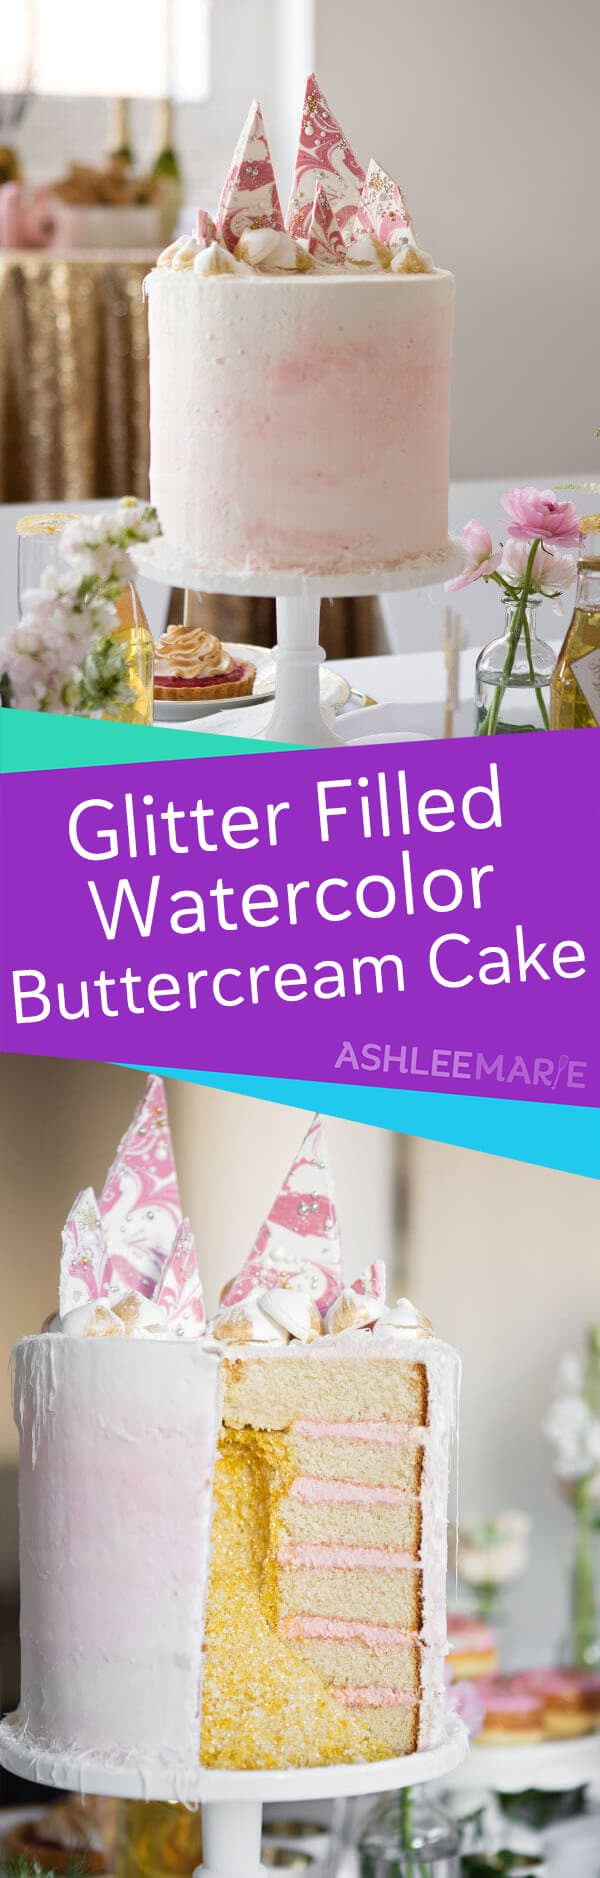 edible glitter filled cake video tutorial